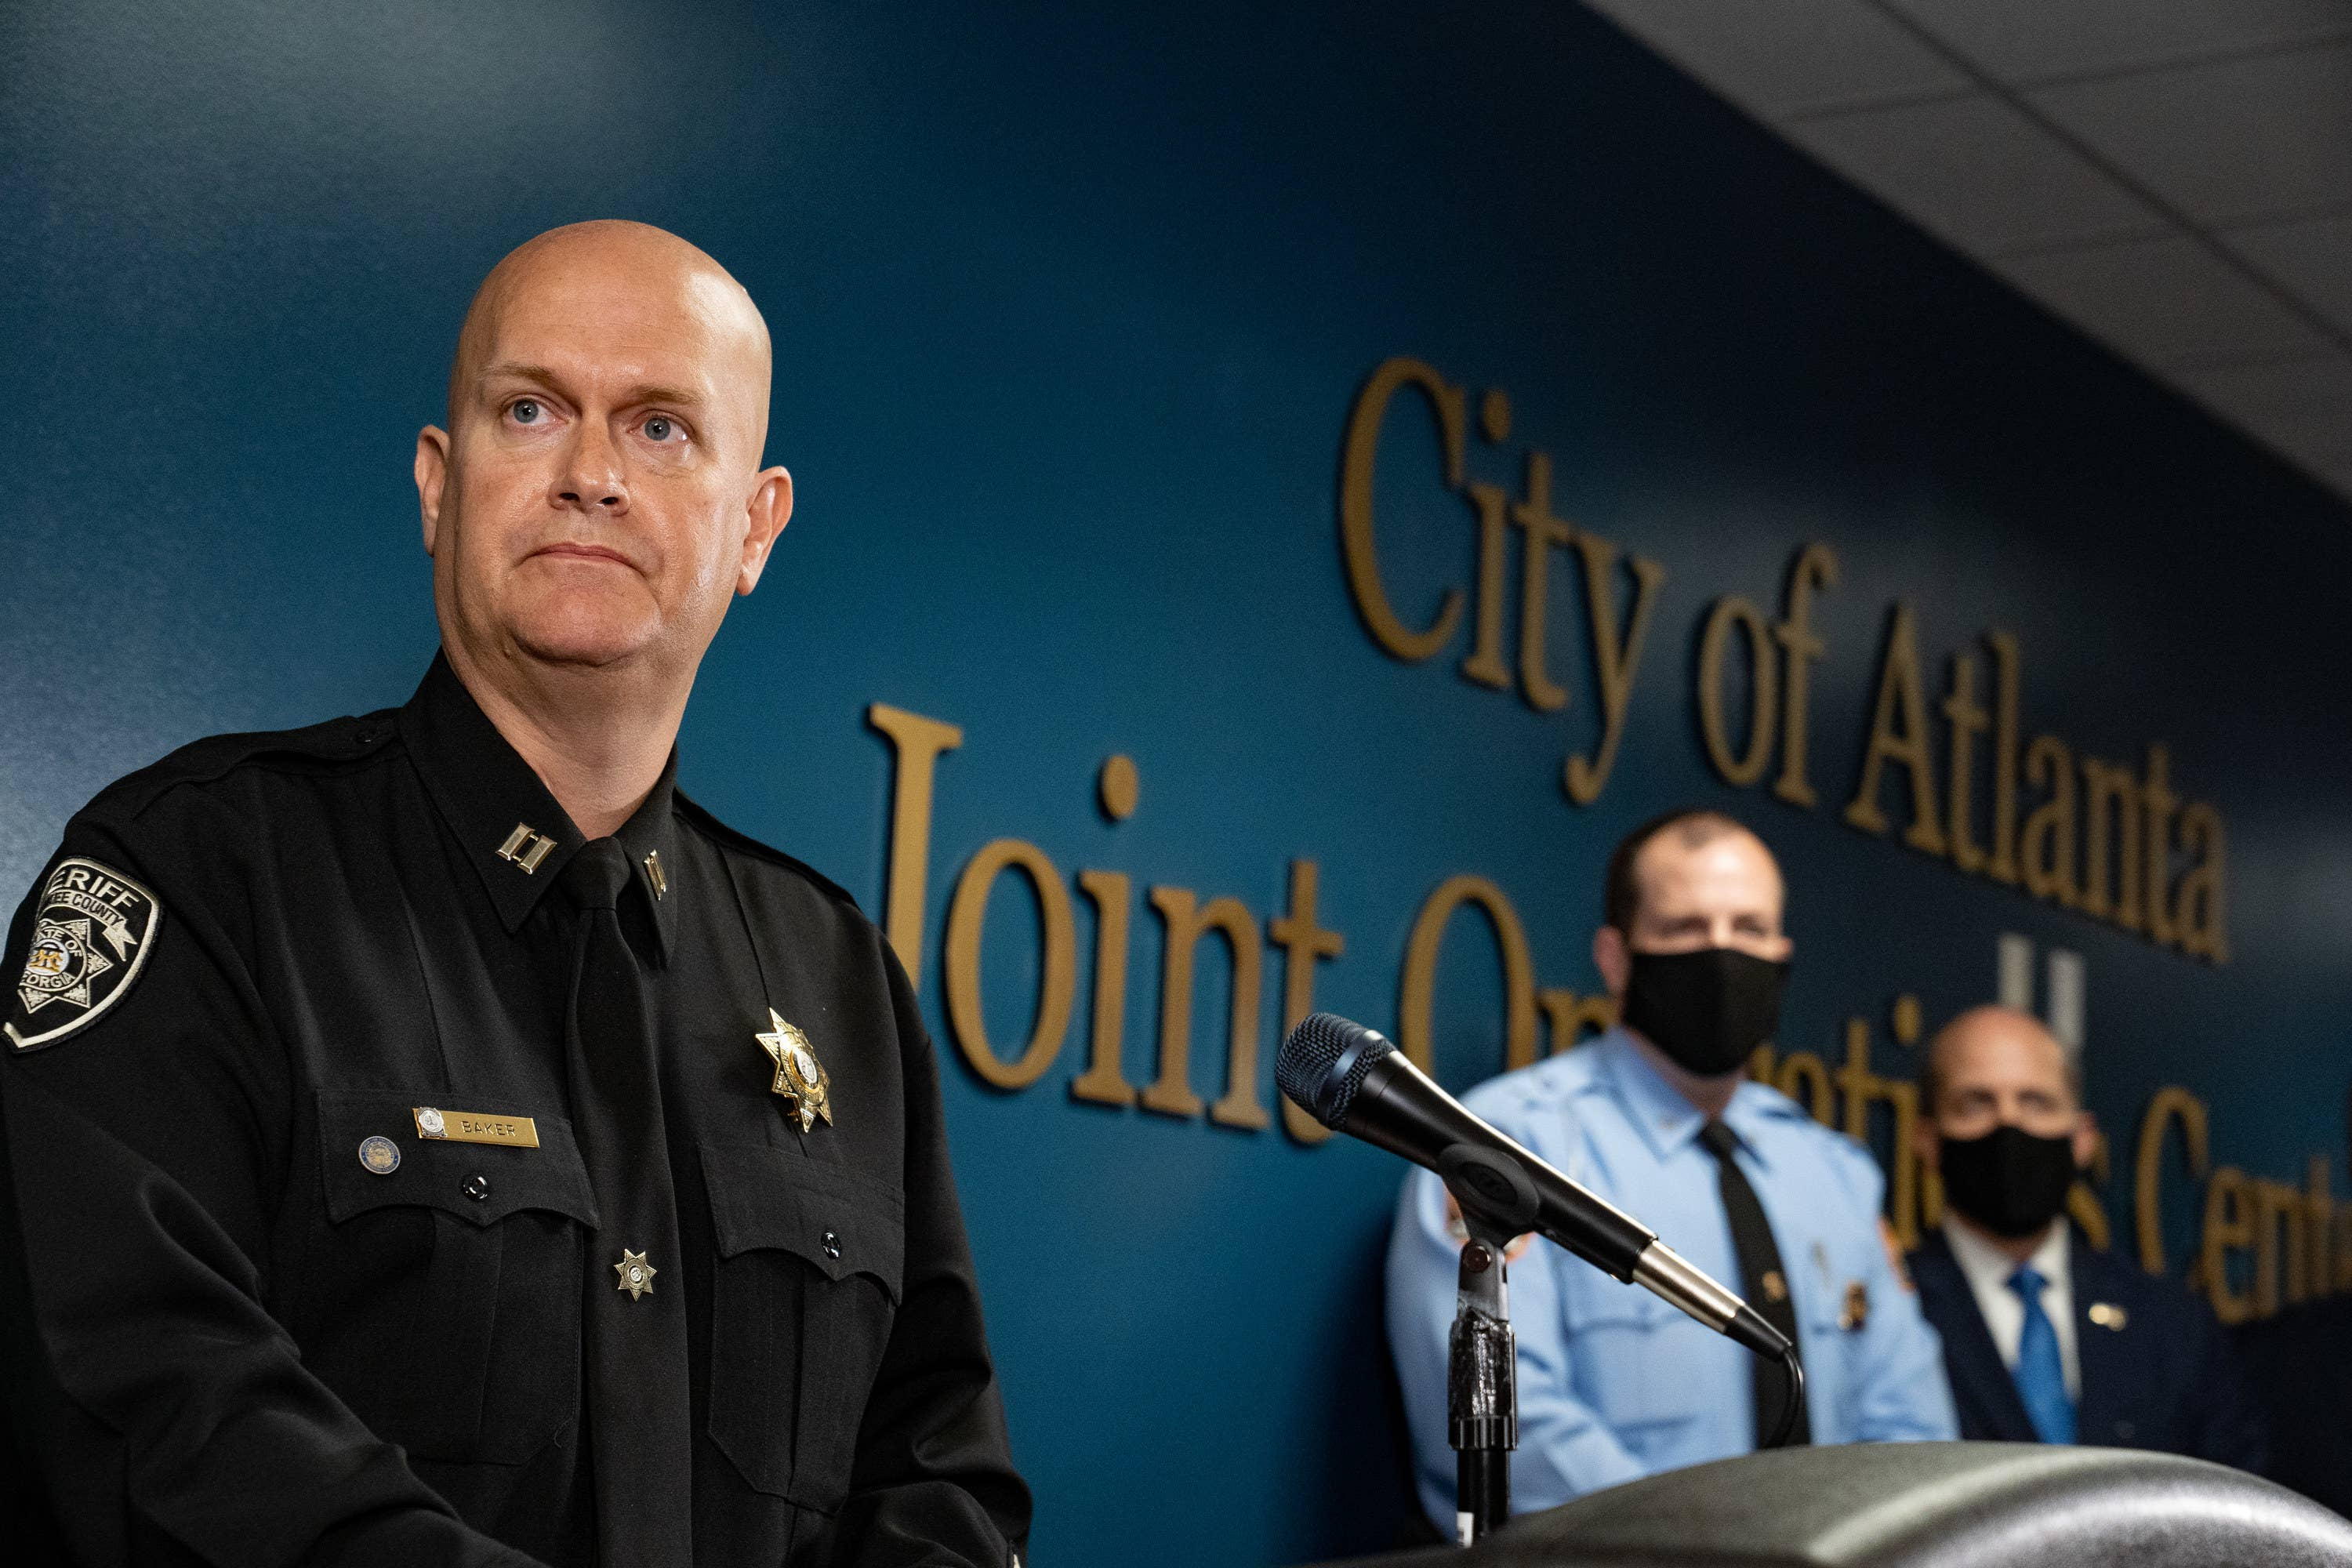 """The Cop Who Said The Spa Shooter Had A """"Bad Day"""" Previously Posted A Racist Shirt Blaming China For The Pandemic"""